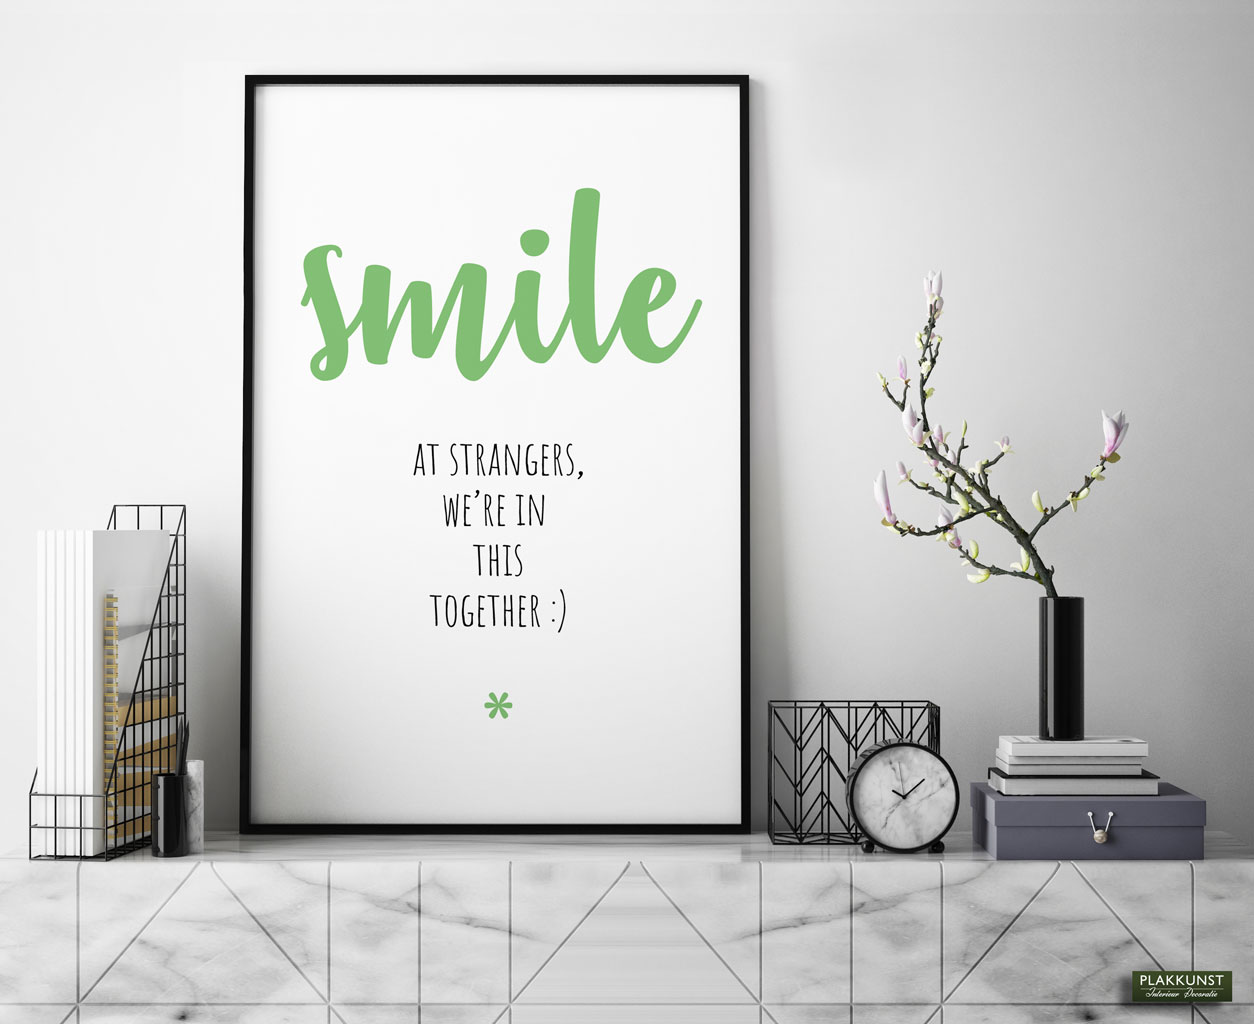 smile at strangers quote poster 2_1